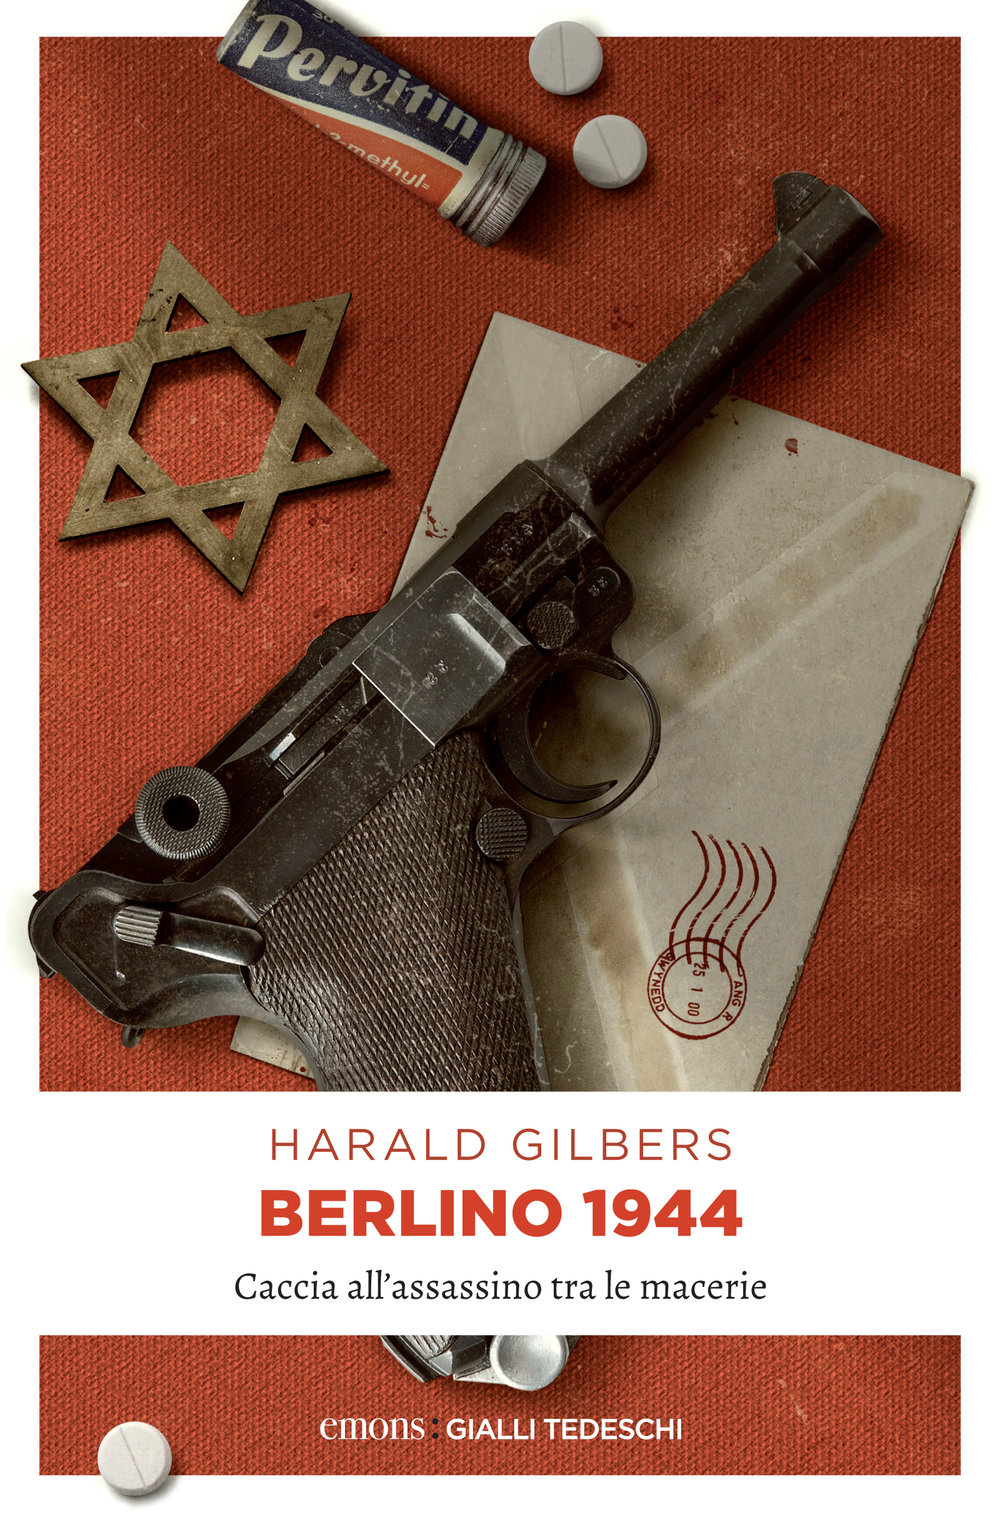 GILBERS_Berlino1944_COVER-1.jpg